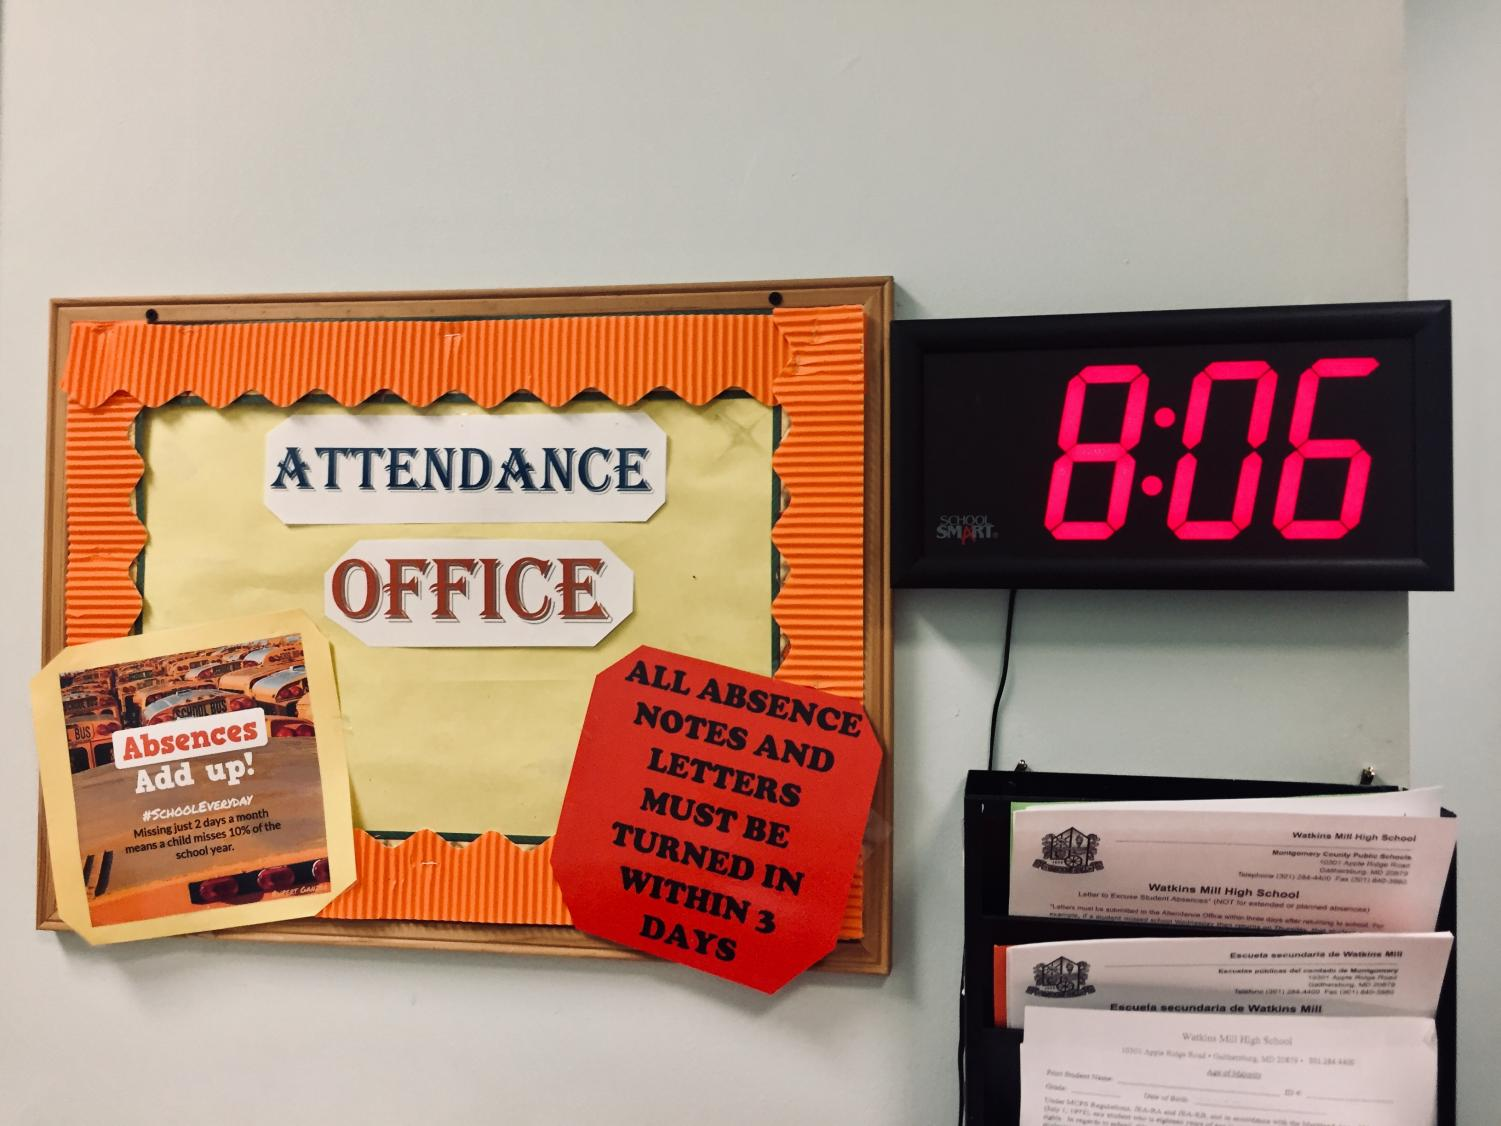 Students who are known for being tardy or absent often report to the attendance office for notes, signing in, or other issues.